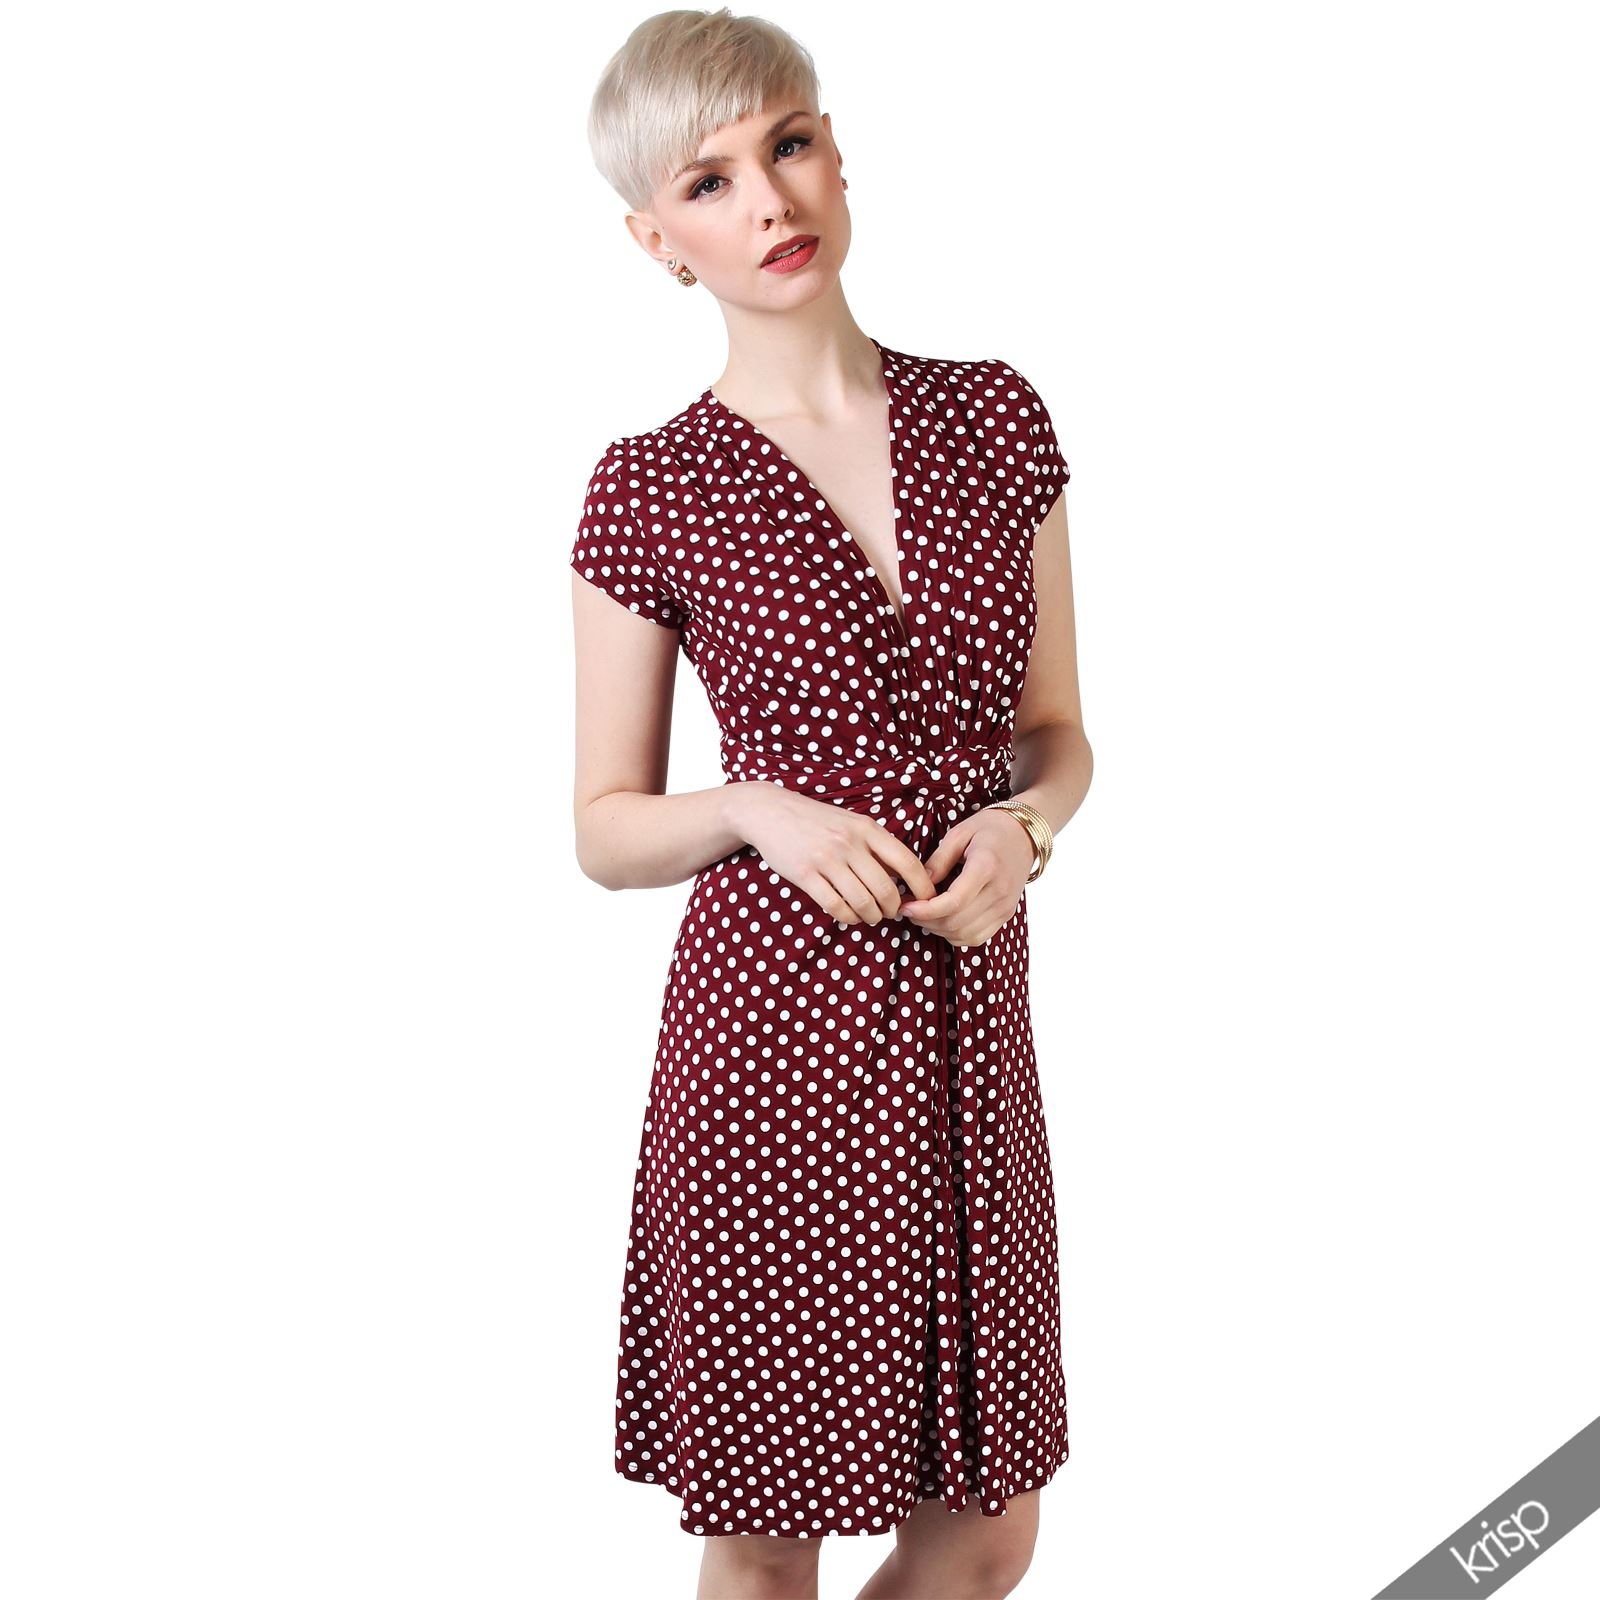 Womens-Polka-Dot-Retro-Dress-Pleated-Skirt-Wrap-Mini-V-Neck-Top-Swing-Party thumbnail 37